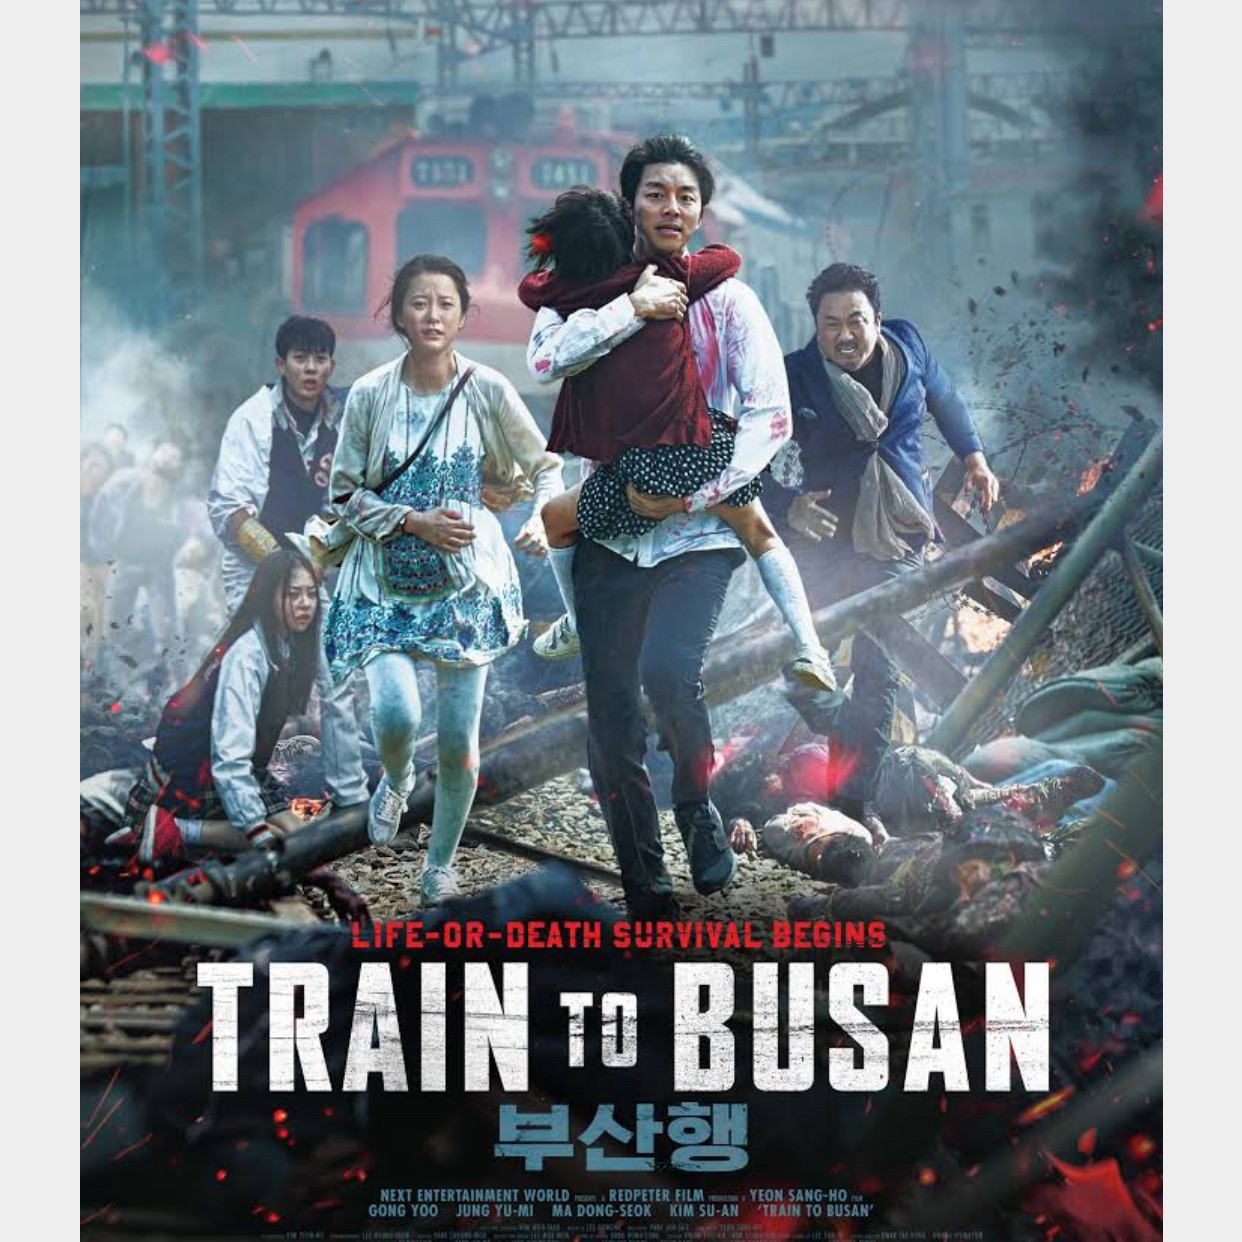 """In the Korean film poster for """"Train to Busan,"""" Seok Woo, embracing Su An, and other passengers run away from Busan Station that is rampant with zombies."""